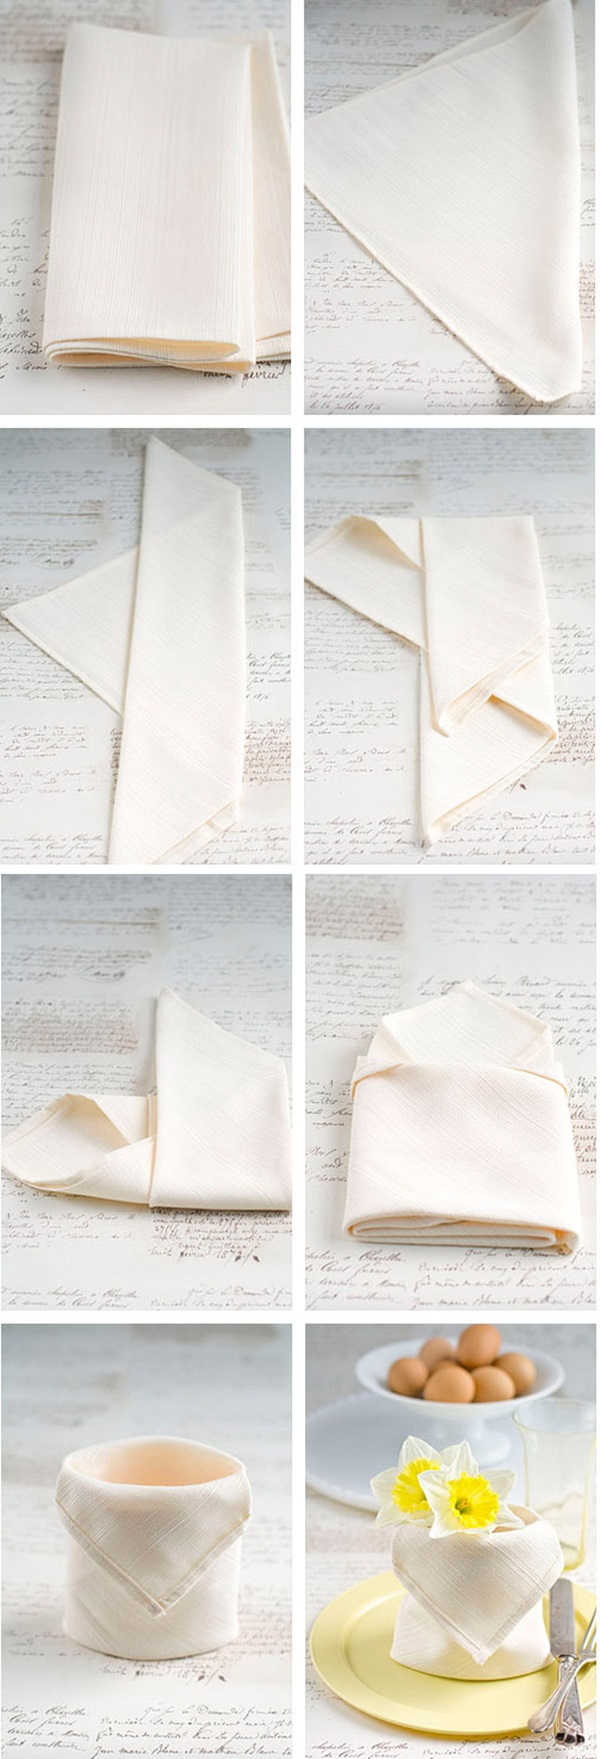 30 Creative Napkin Folding Ideas 8